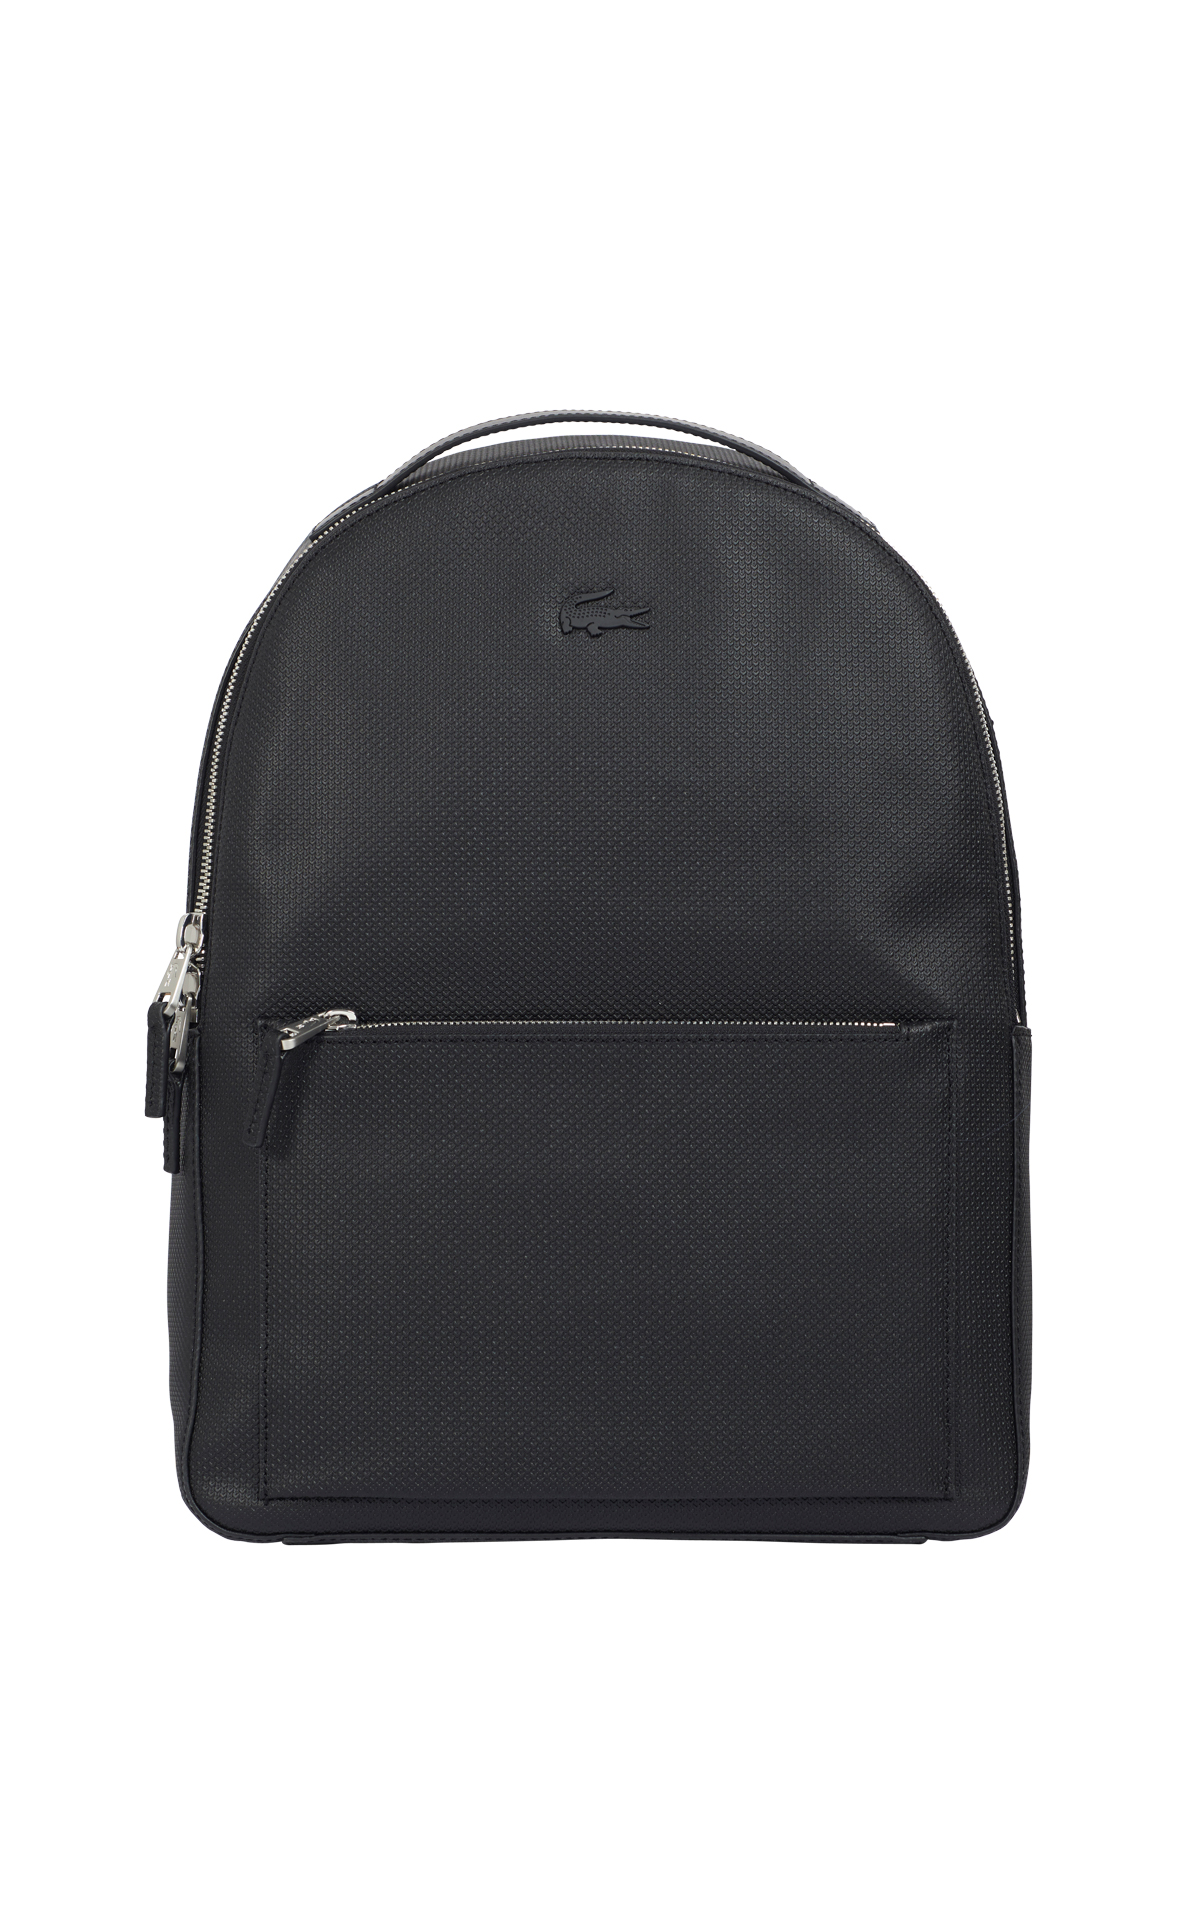 Black leather backpack Lacoste